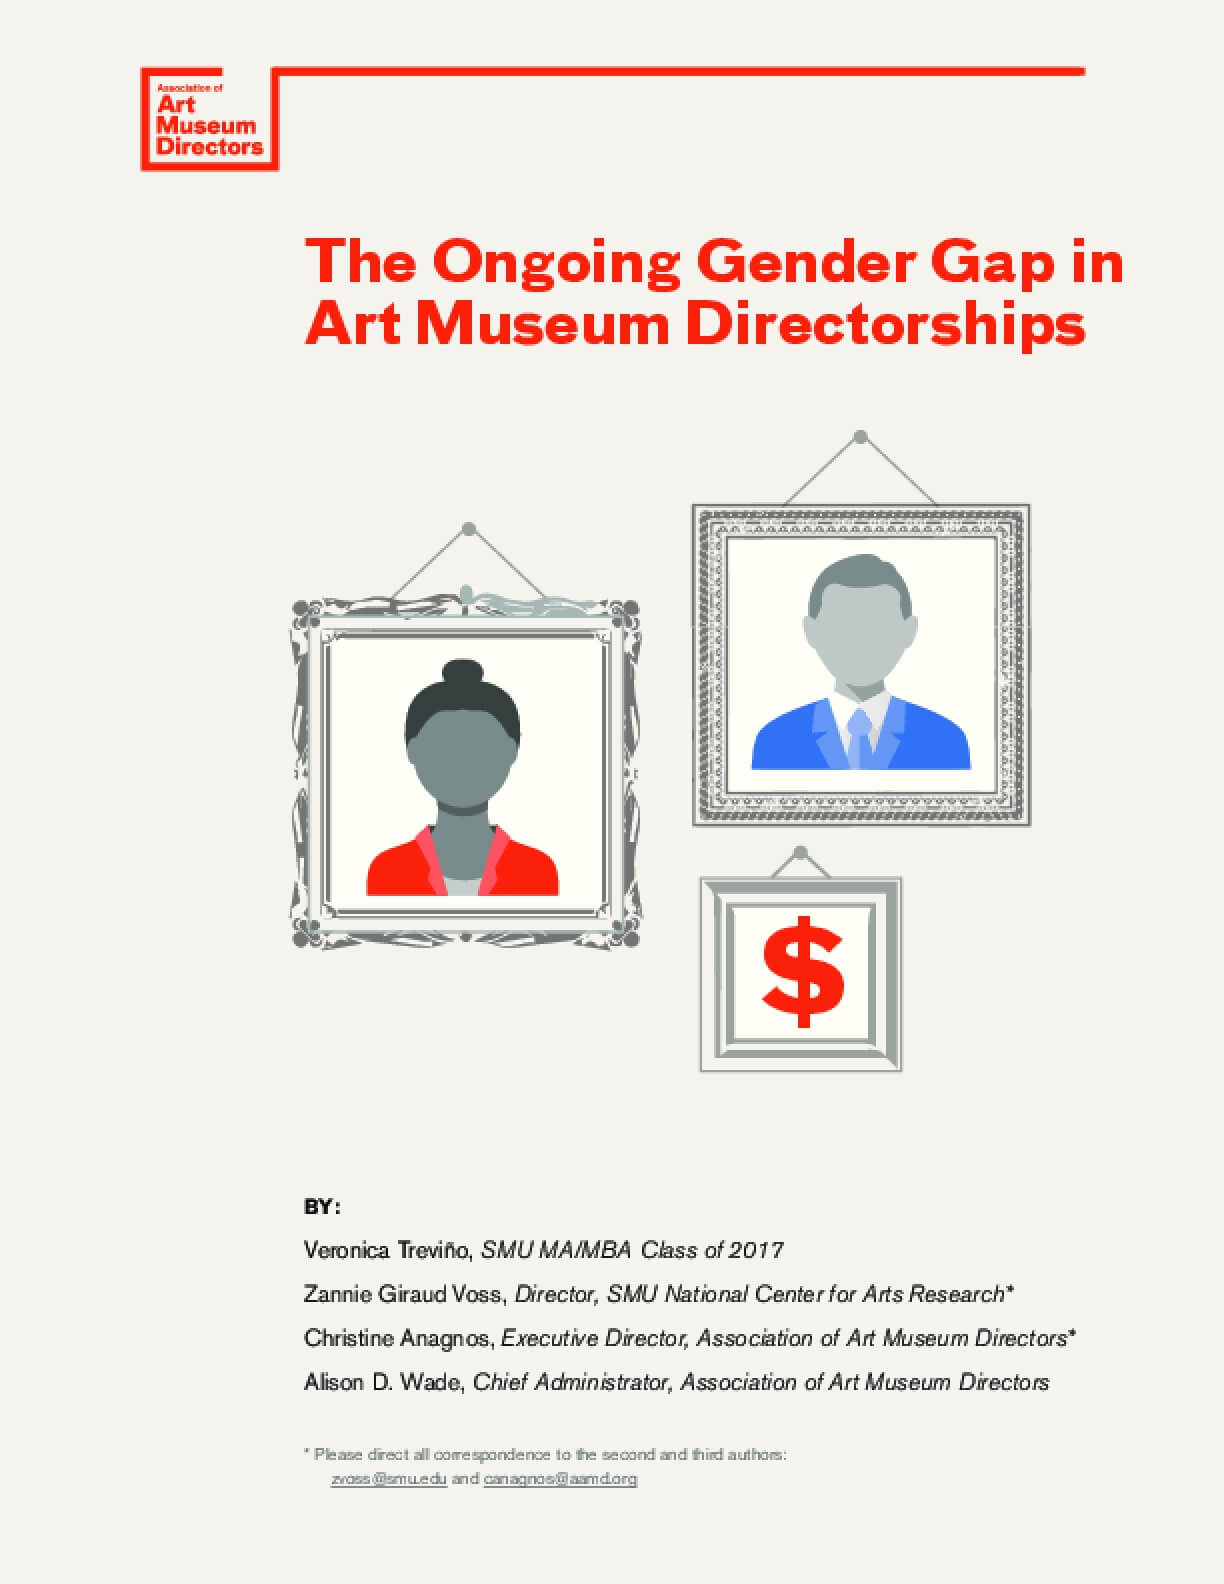 The Ongoing Gender Gap in Art Museum Directorships